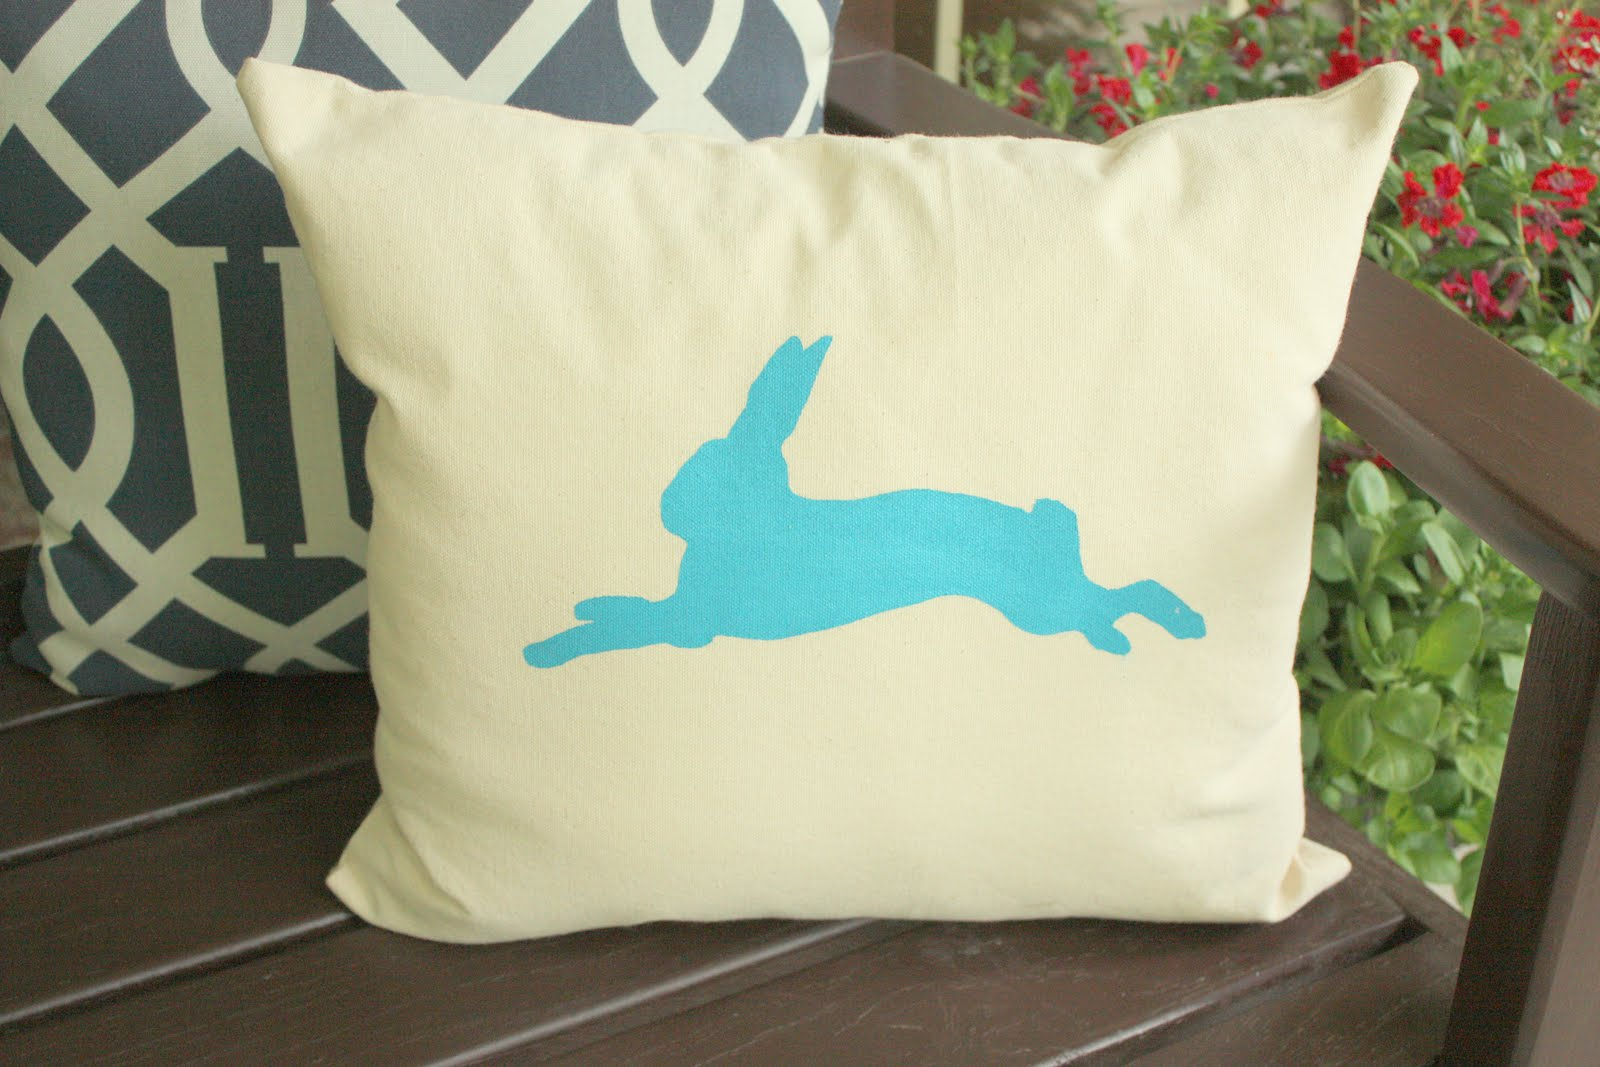 diy bunny print projects using a free printable